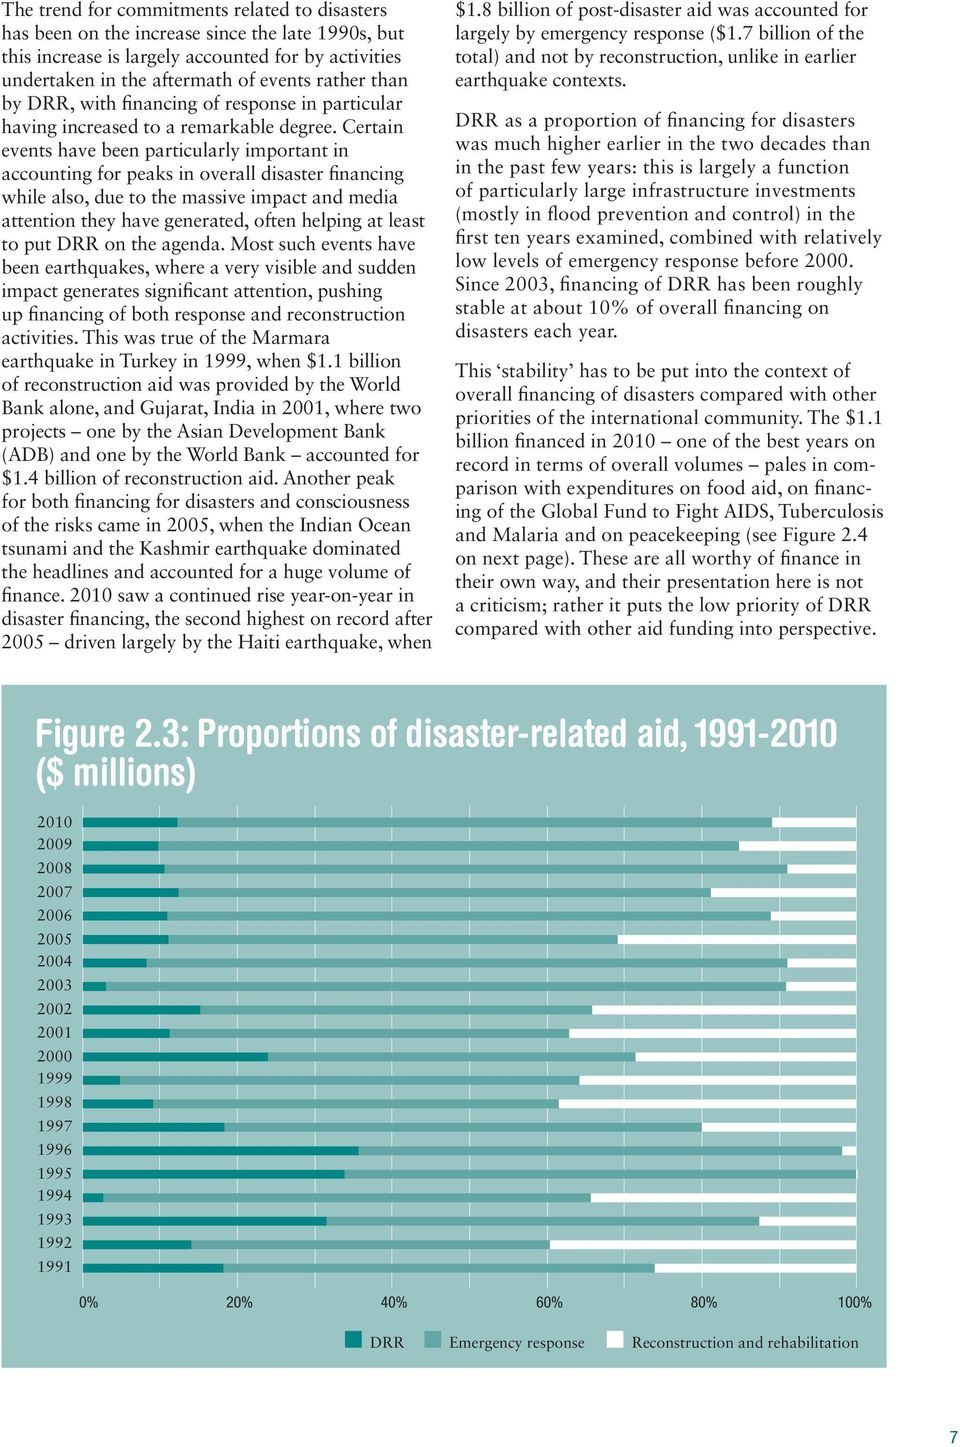 Certain events have been particularly important in accounting for peaks in overall disaster financing while also, due to the massive impact and media attention they have generated, often helping at